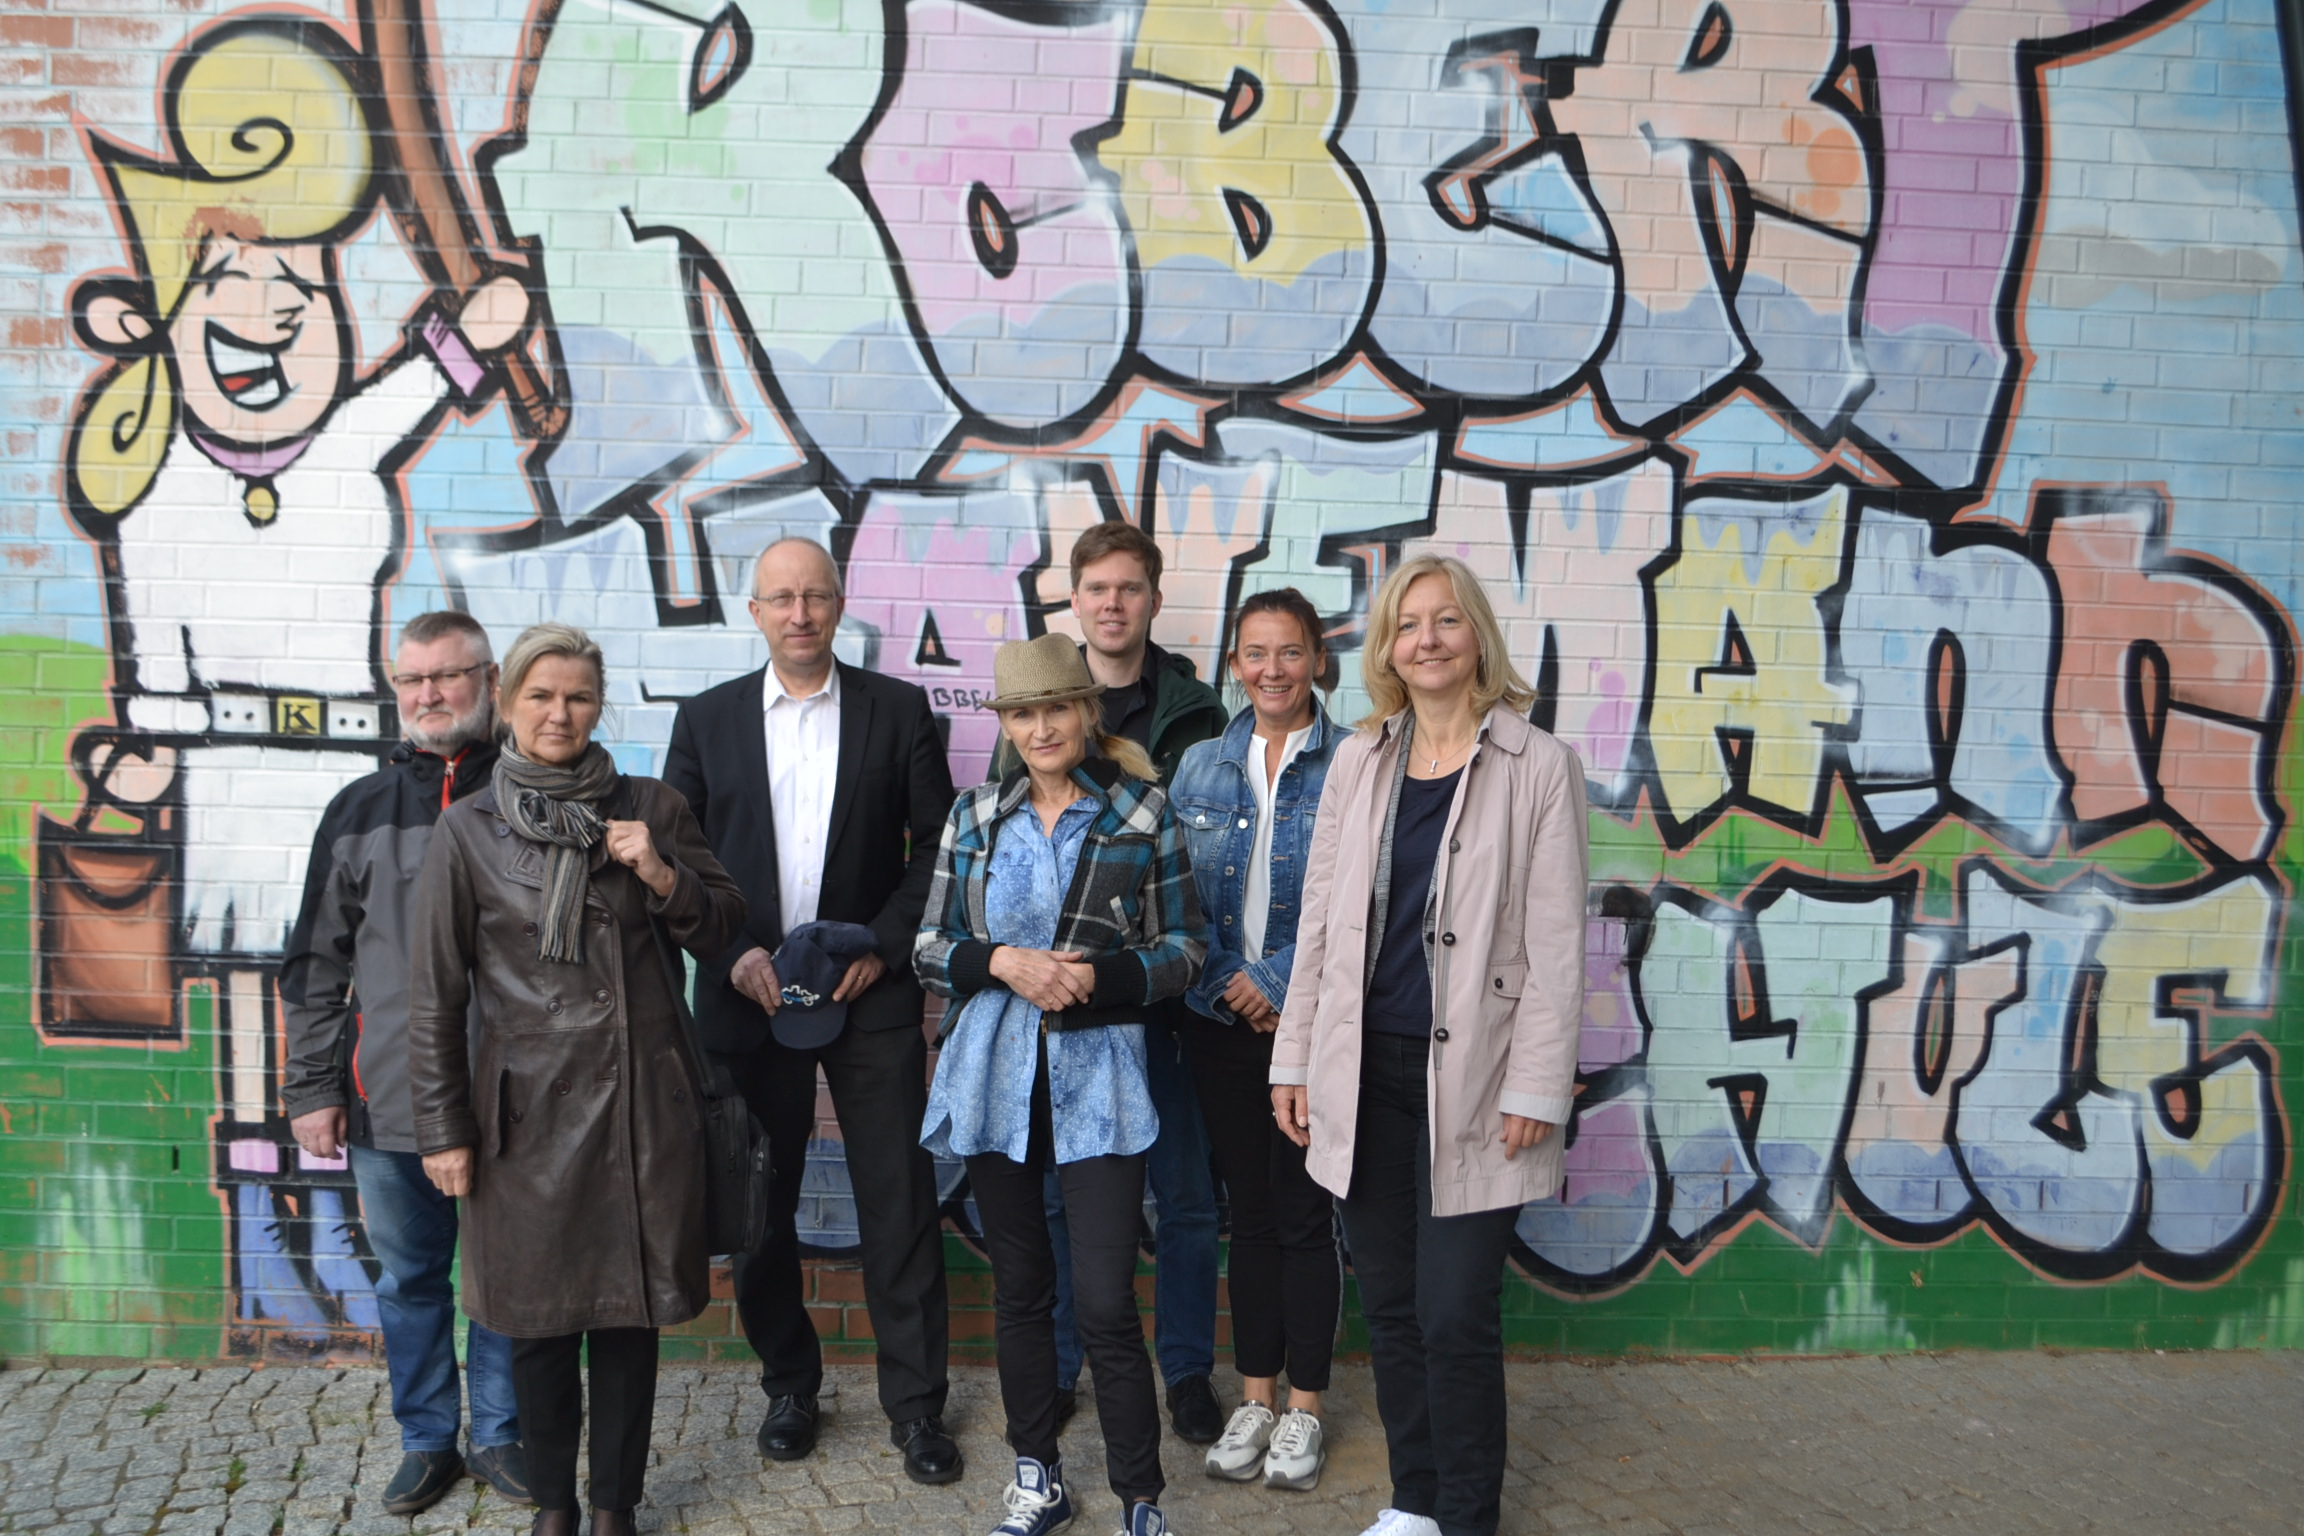 Standing Together For A Better Future Renewable Energy As Knowledge Transfer Agentur Fur Erneuerbare Energien